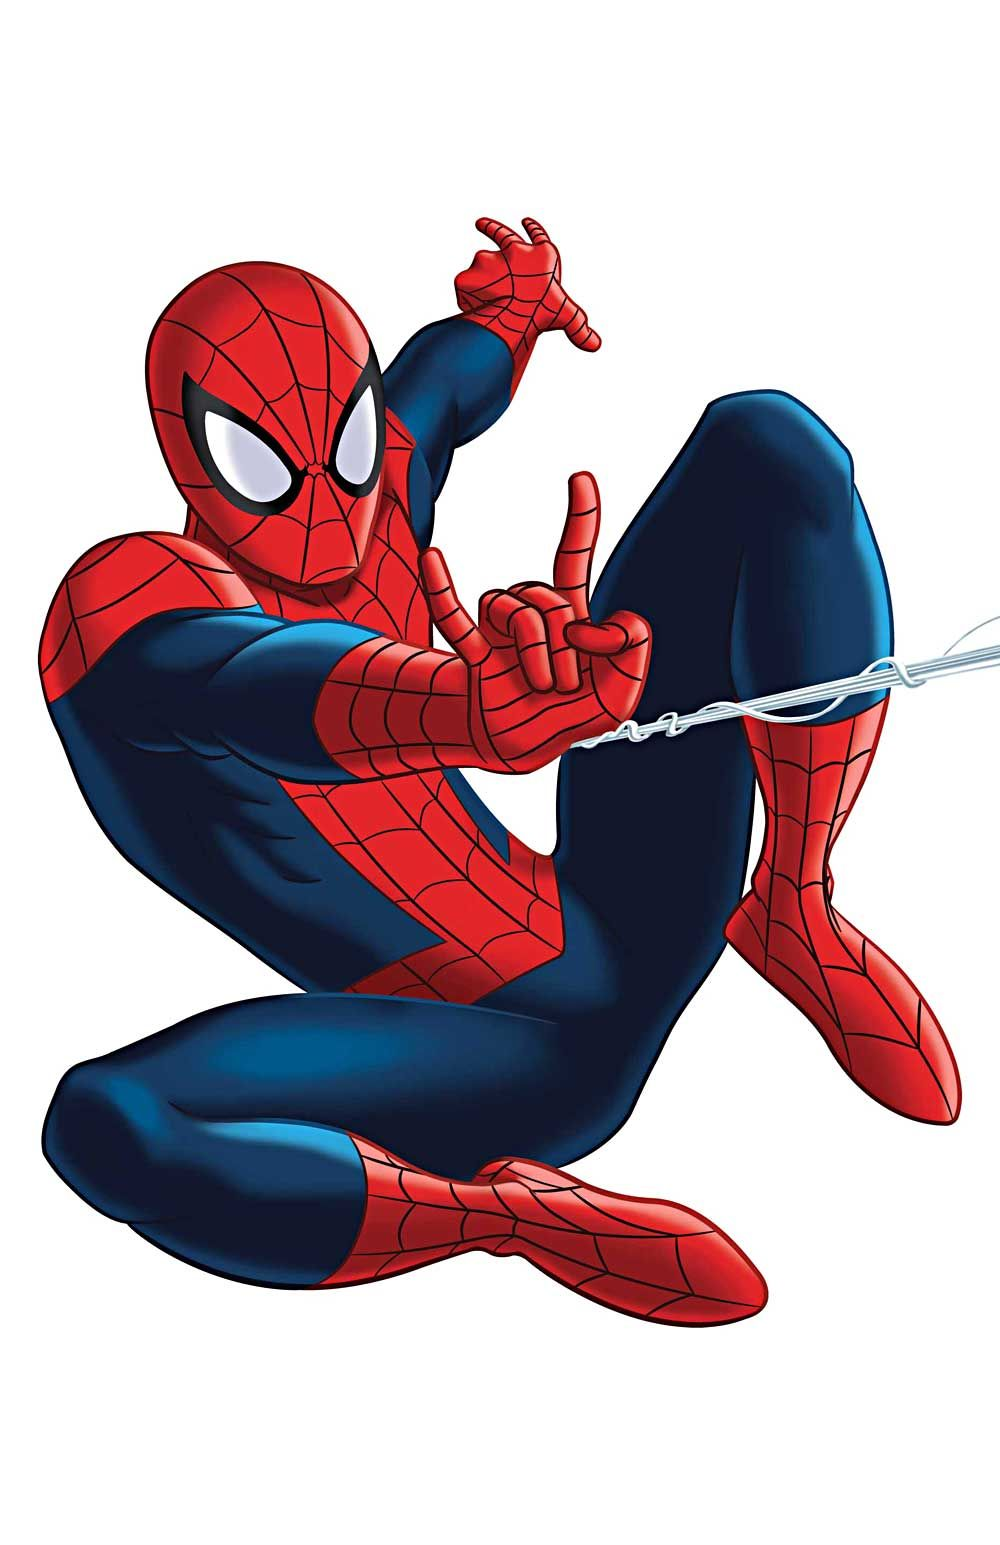 Spiderman Google Search Story - YouTube